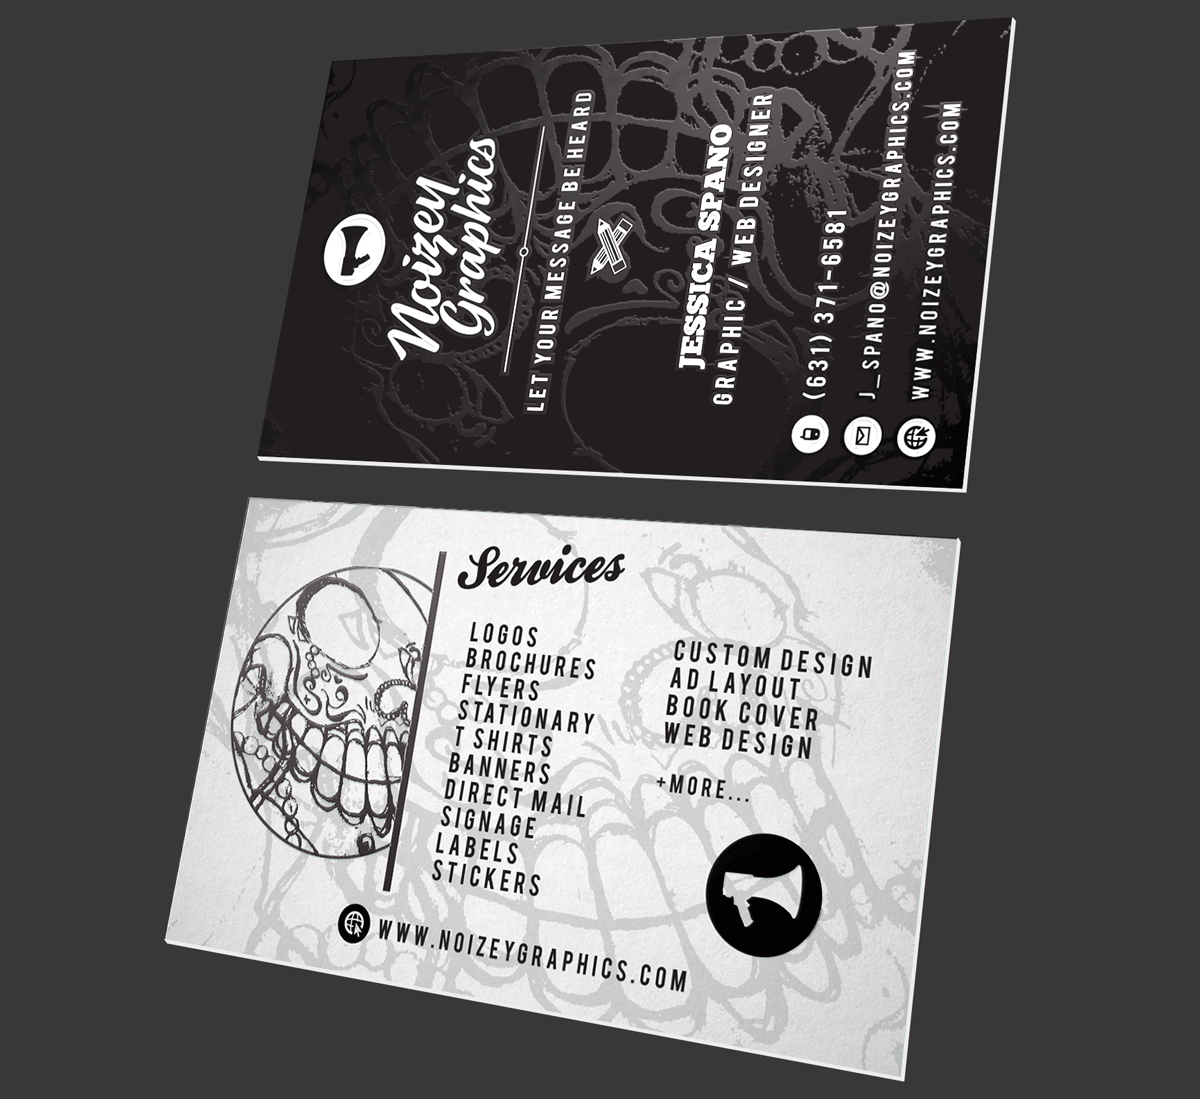 Noizey graphics for Huntington card designs